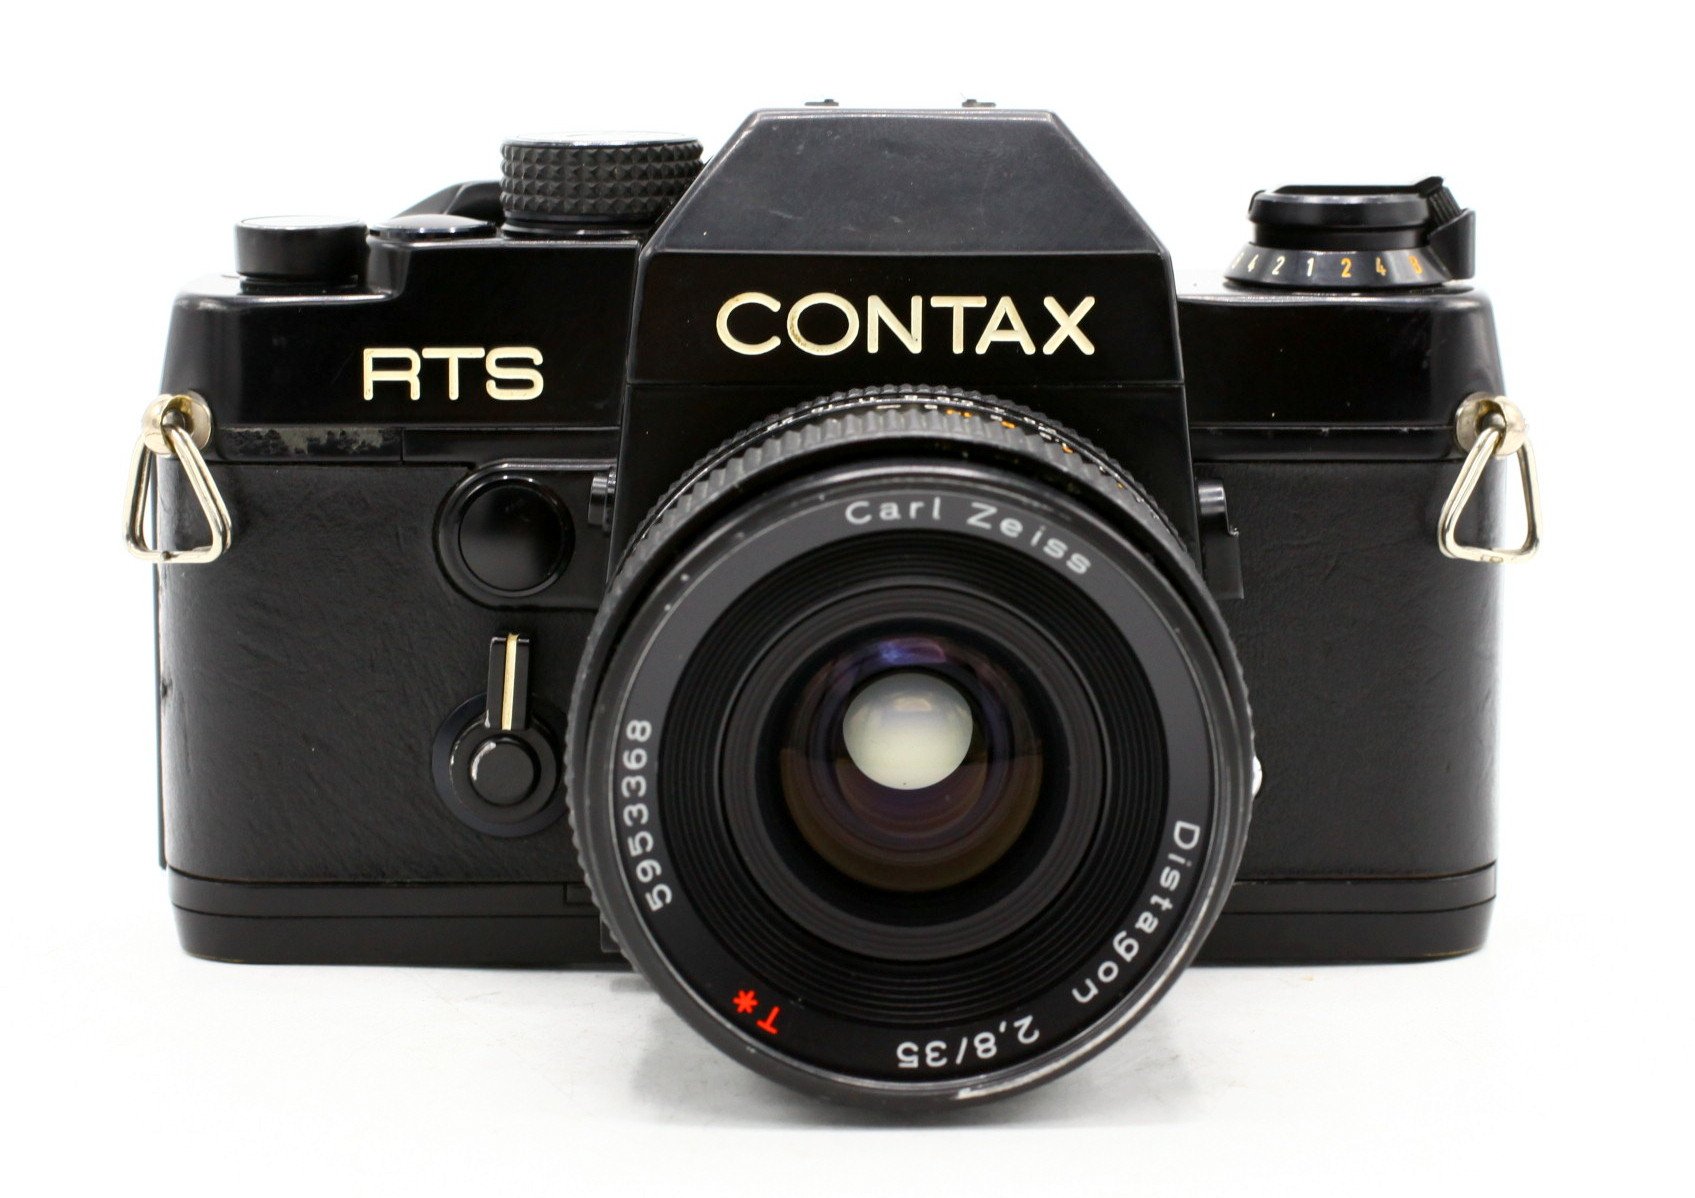 Contax RTS Body + Carl Zeiss 35mm F2.8 Distagon T* occasion